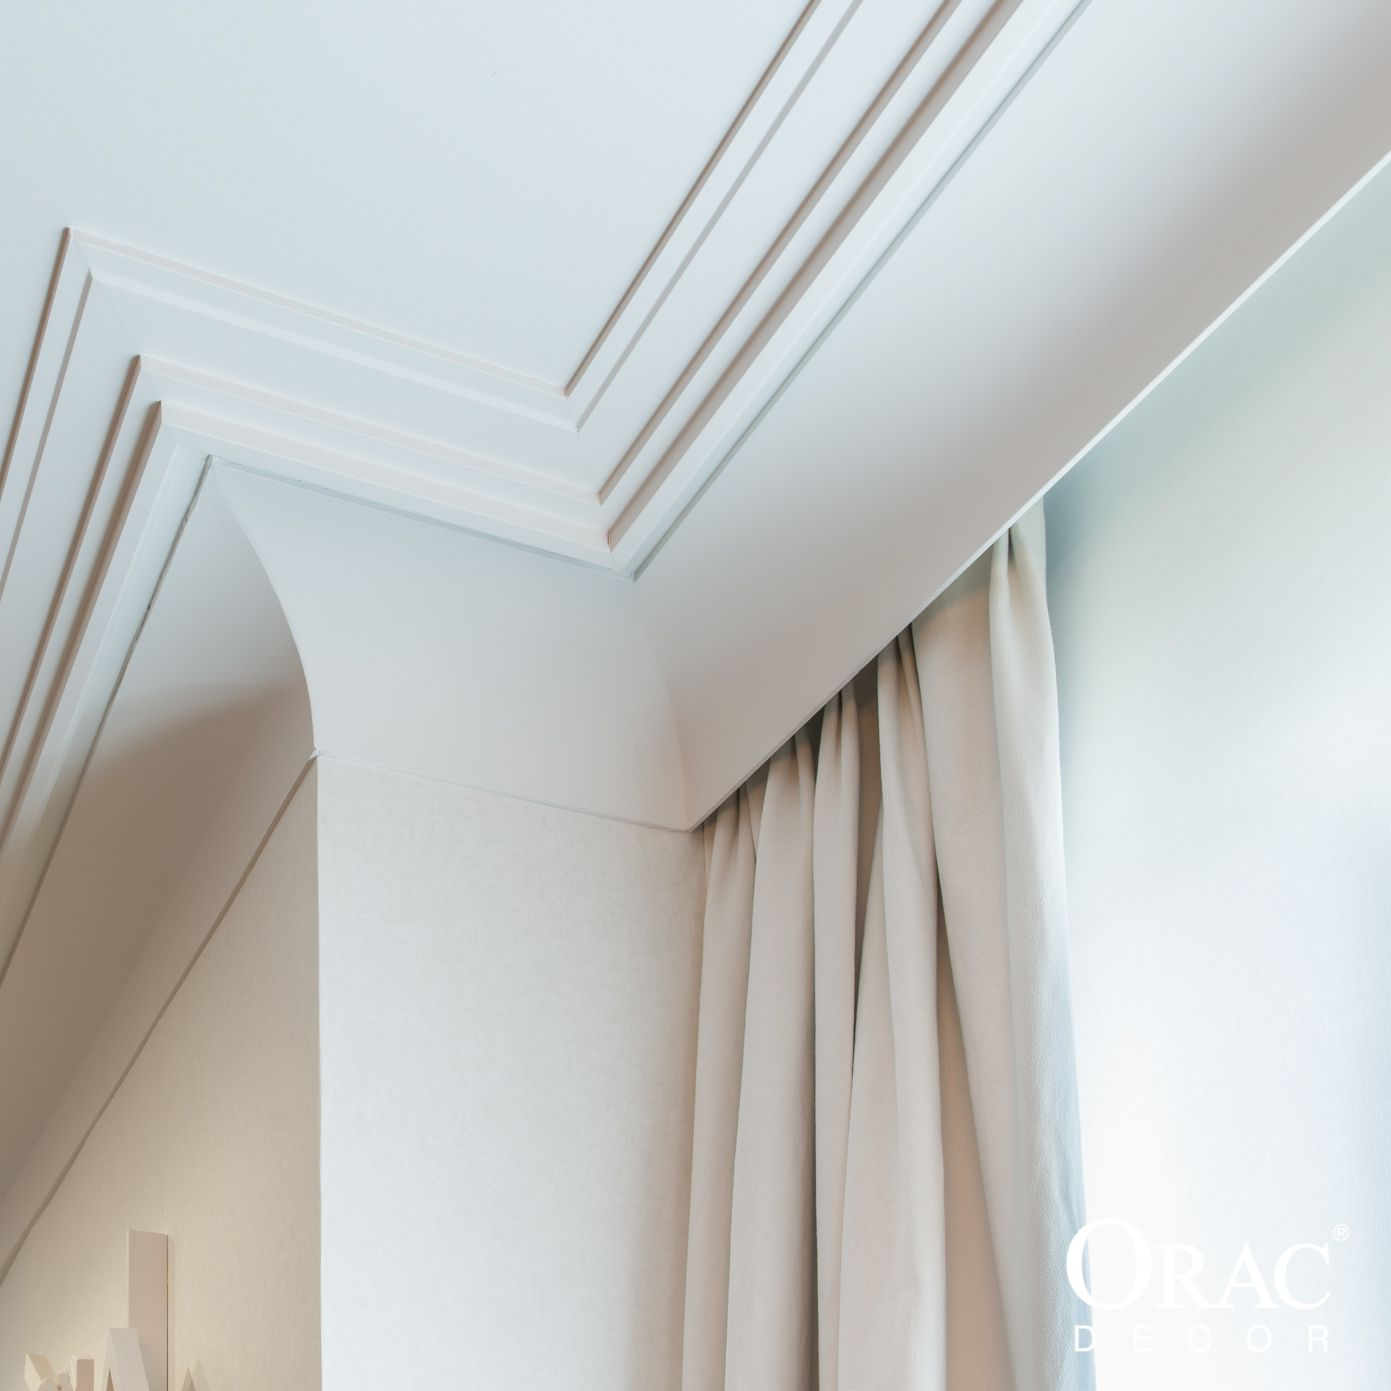 Interiors of ceiling curtains, curtains in the hall on the ceiling cornice